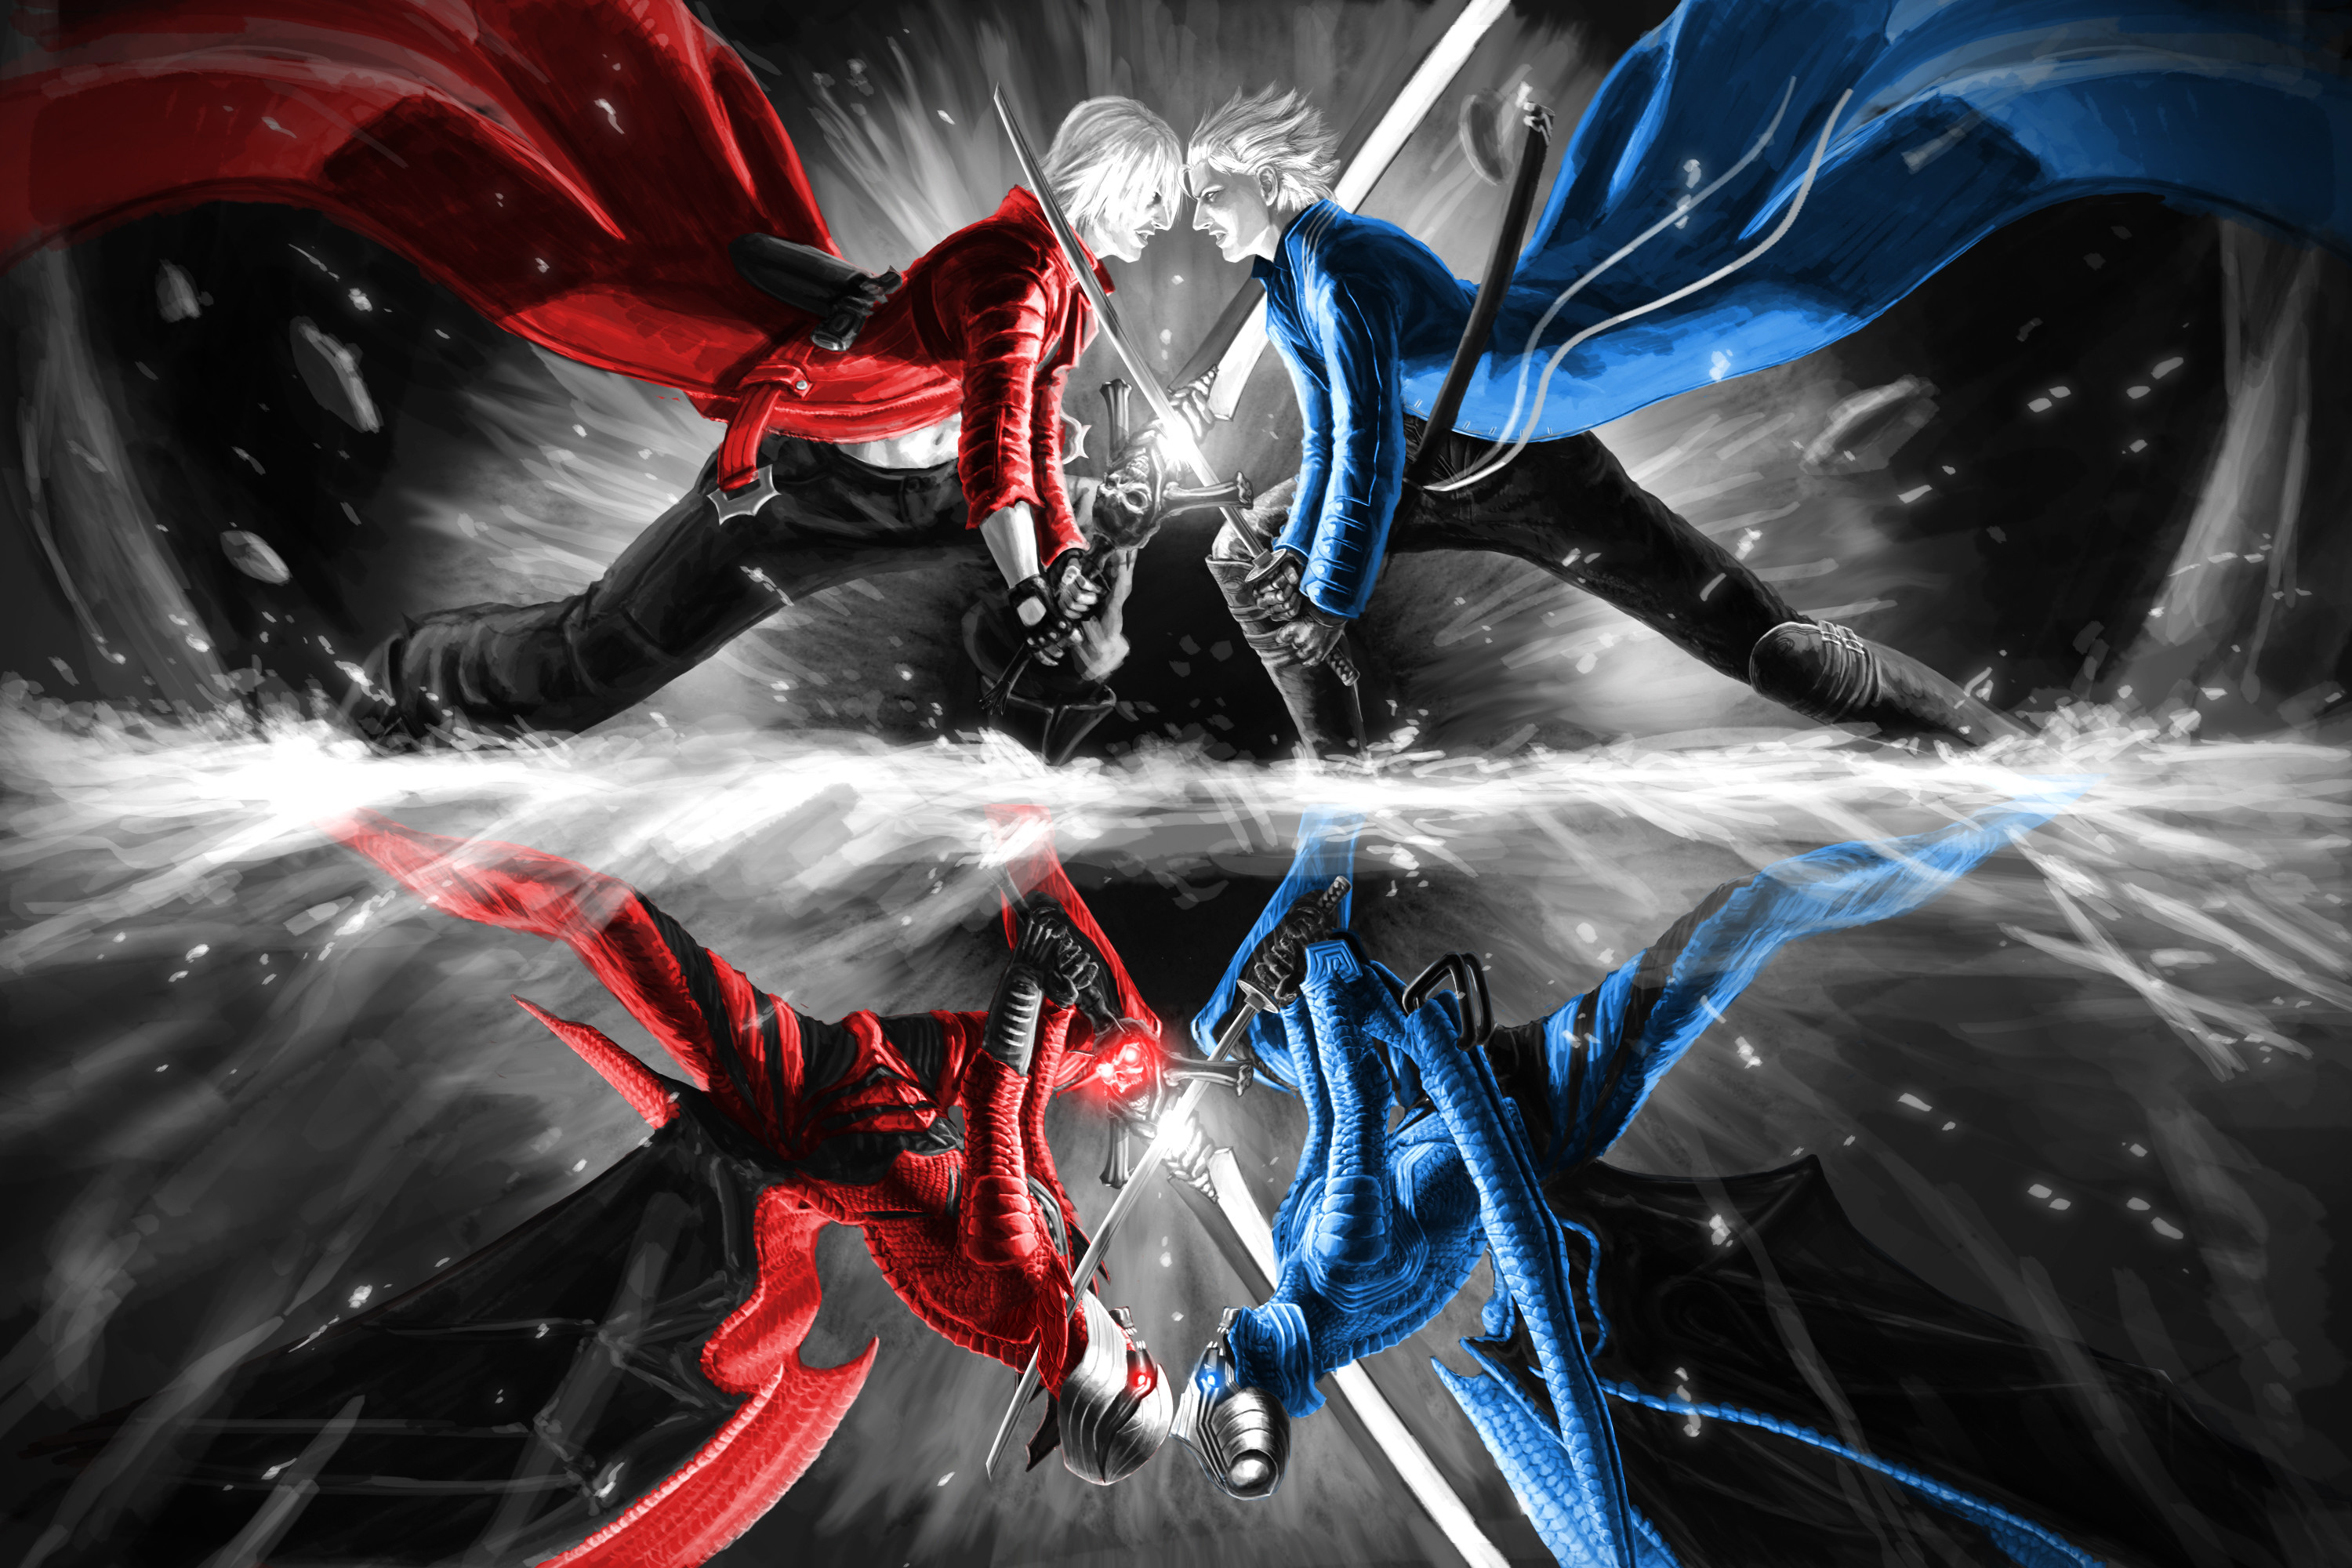 Devil may cry 3 wallpaper 62 images 3000x2000 video game devil may cry wallpaper voltagebd Choice Image